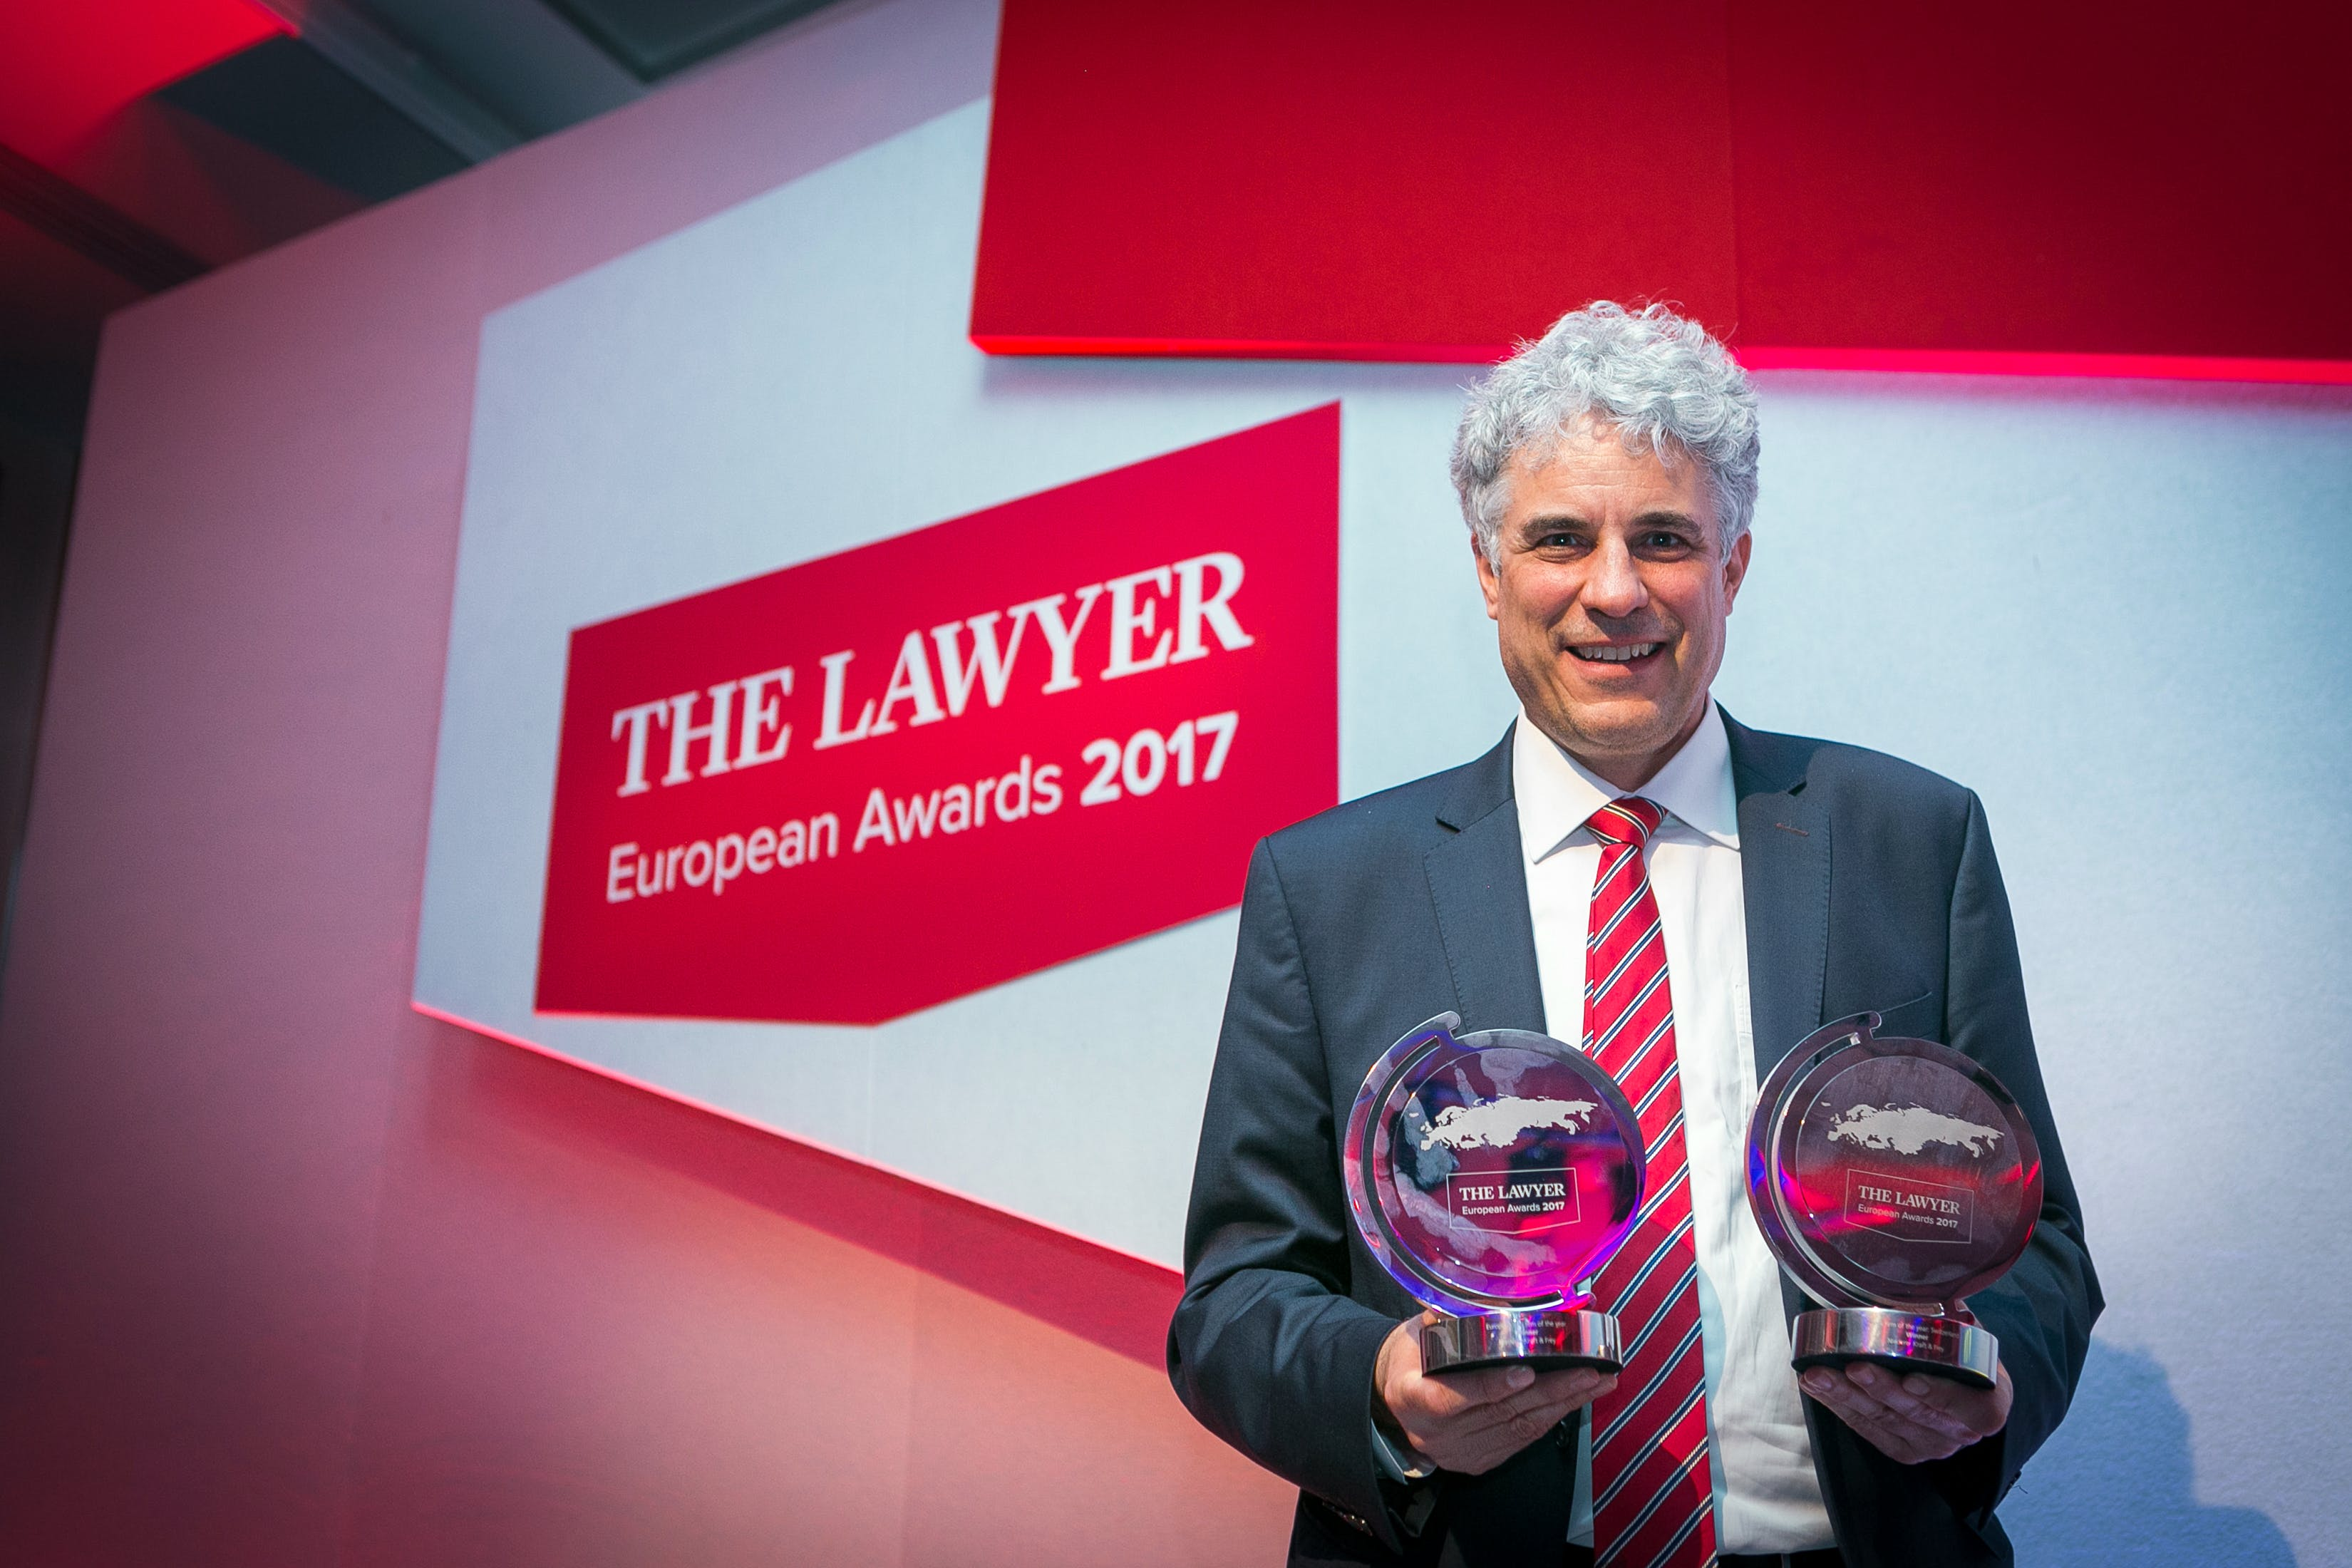 The Lawyer European Awards